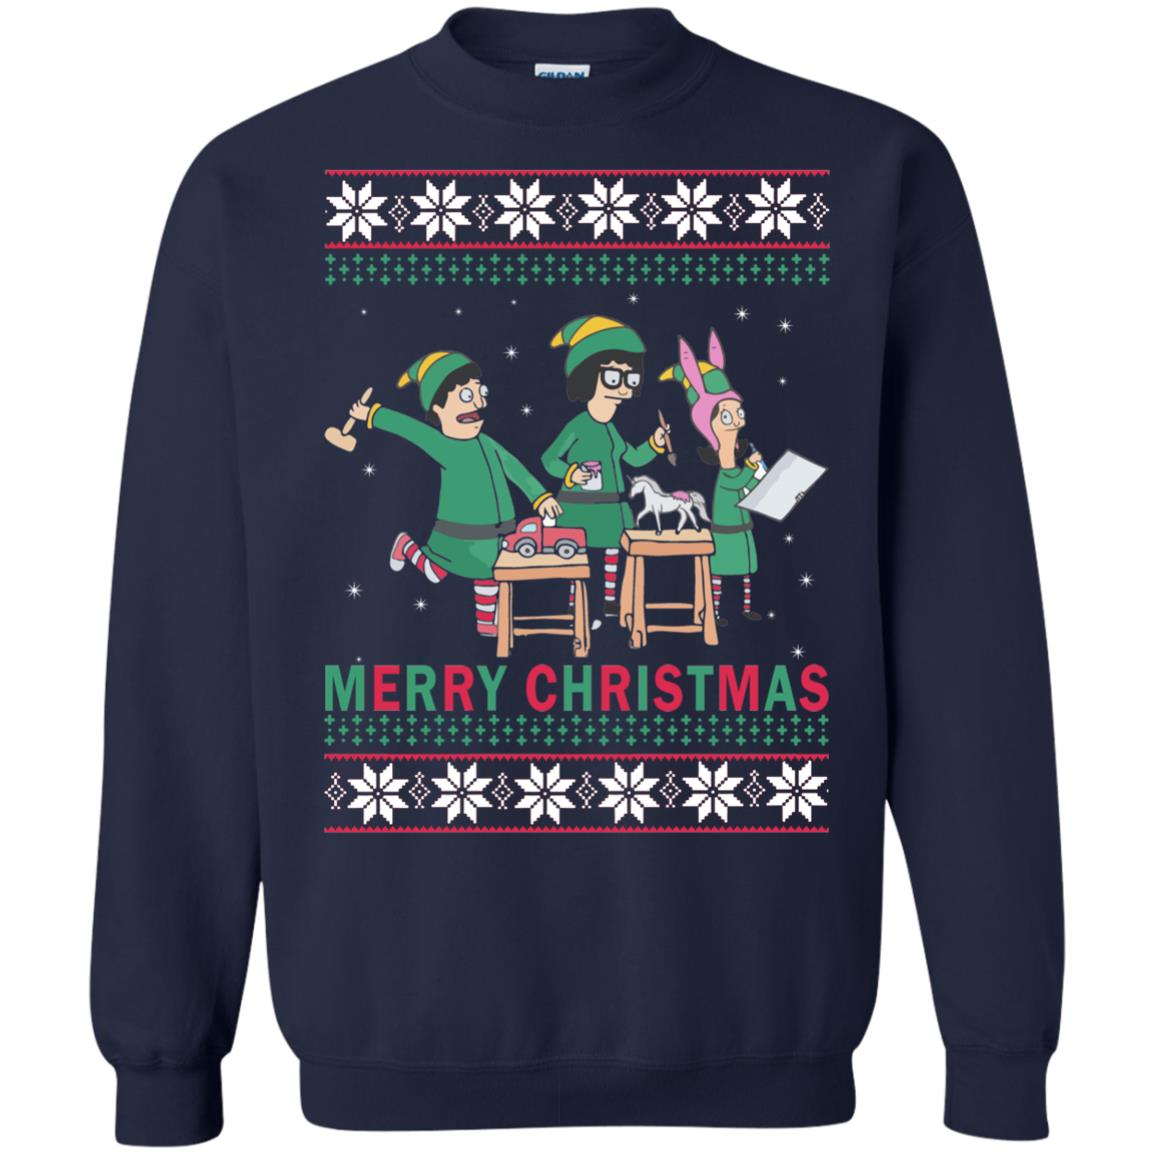 image 6577 - Bob's Burgers Family Elf Merry Christmas Ugly Sweater, Hoodie